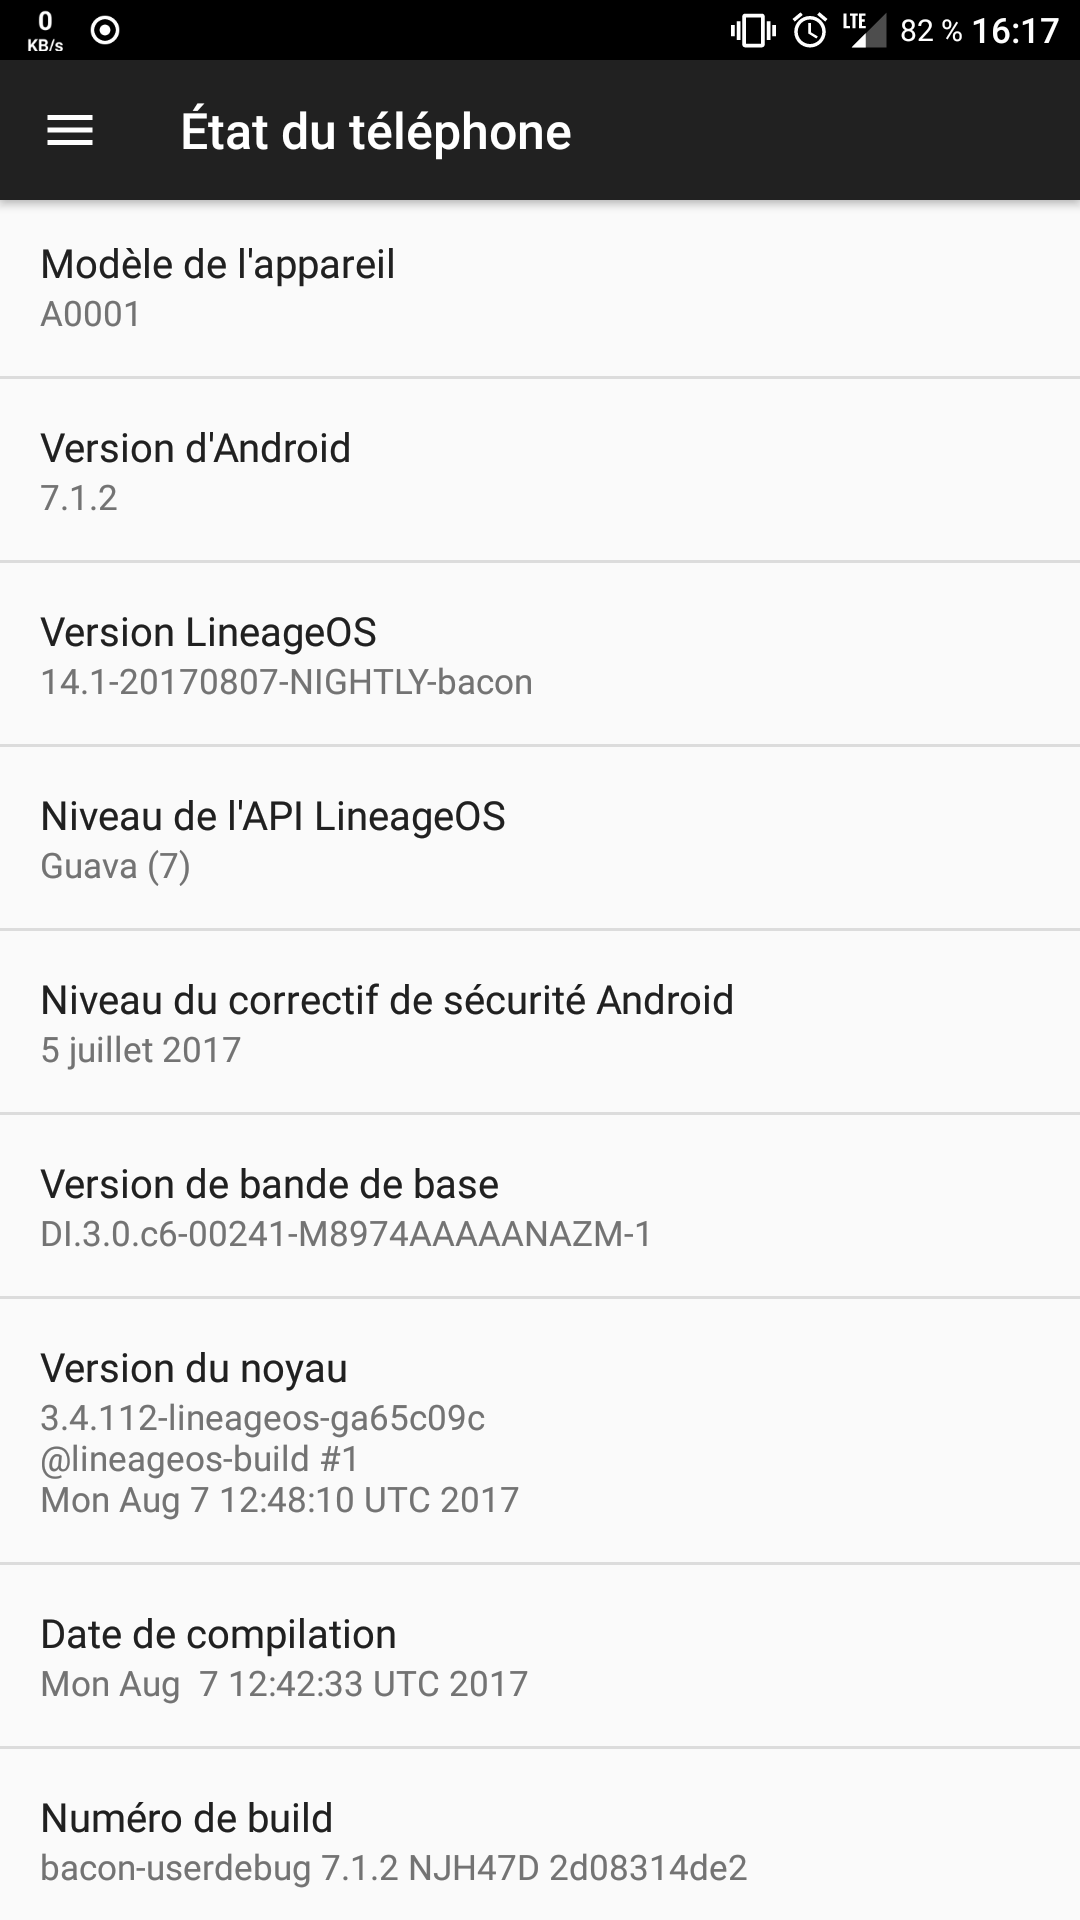 How to use MicroG on LineageOS or CyanogenMod without Xposed